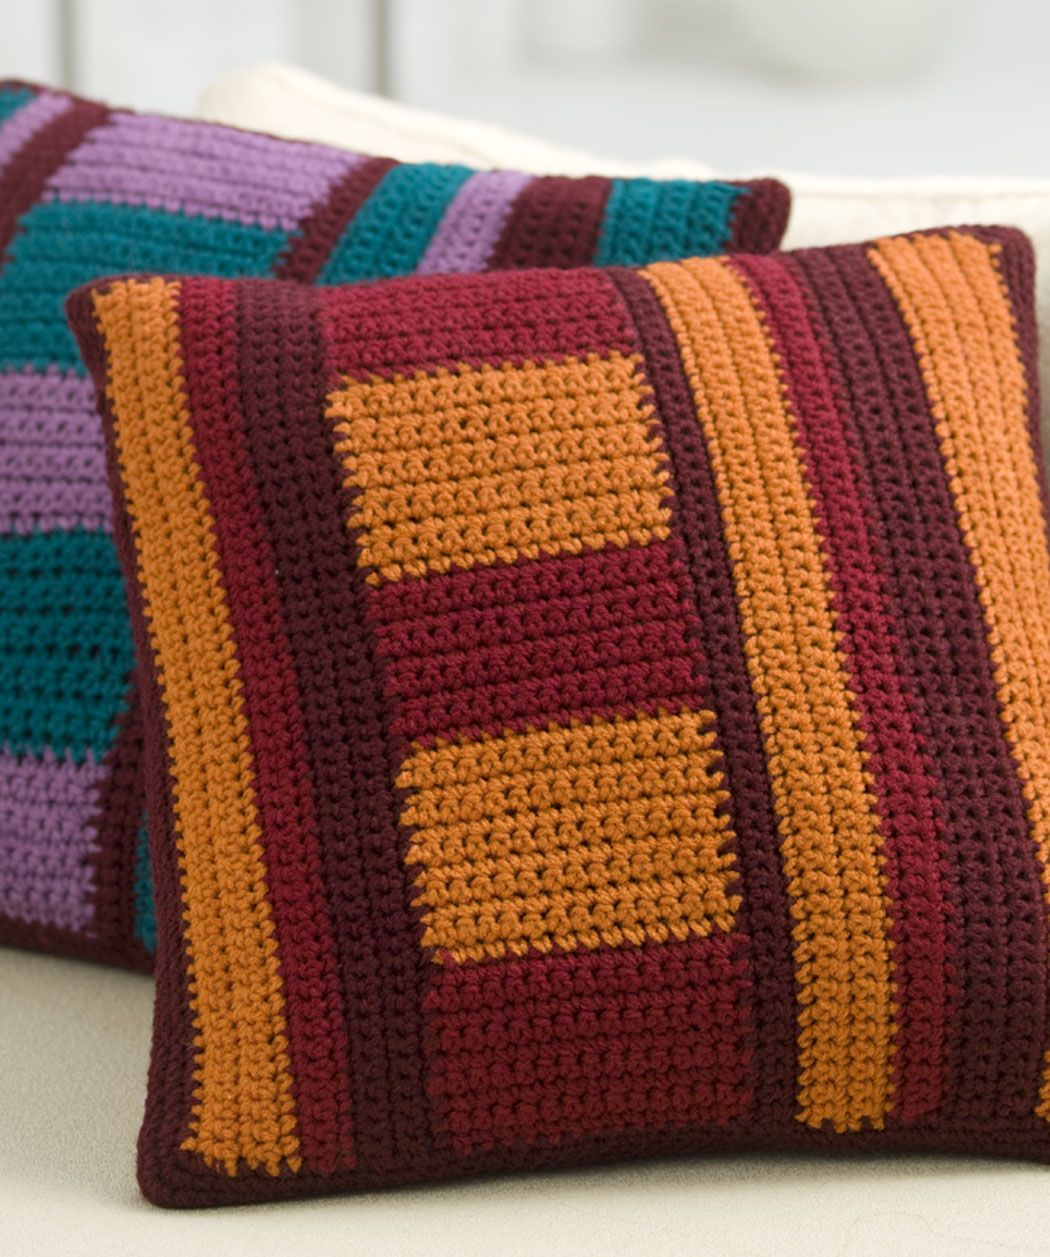 Mod Striped Pillows Free Crochet Pattern from Red Heart Yarns ...